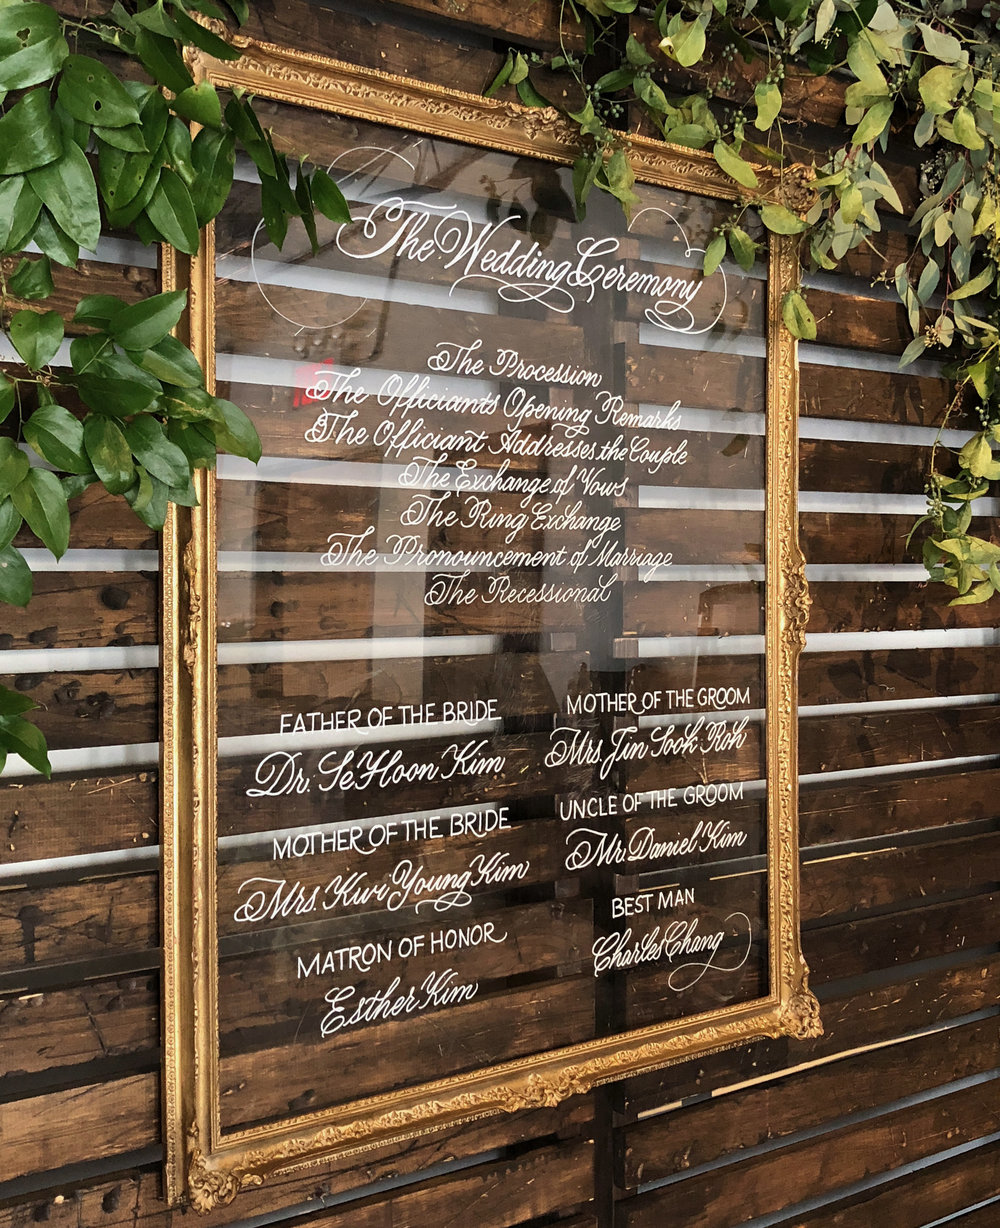 Wedding ceremony program calligraphy on acrylic with an ornate gold frame | by www.chavelli.com